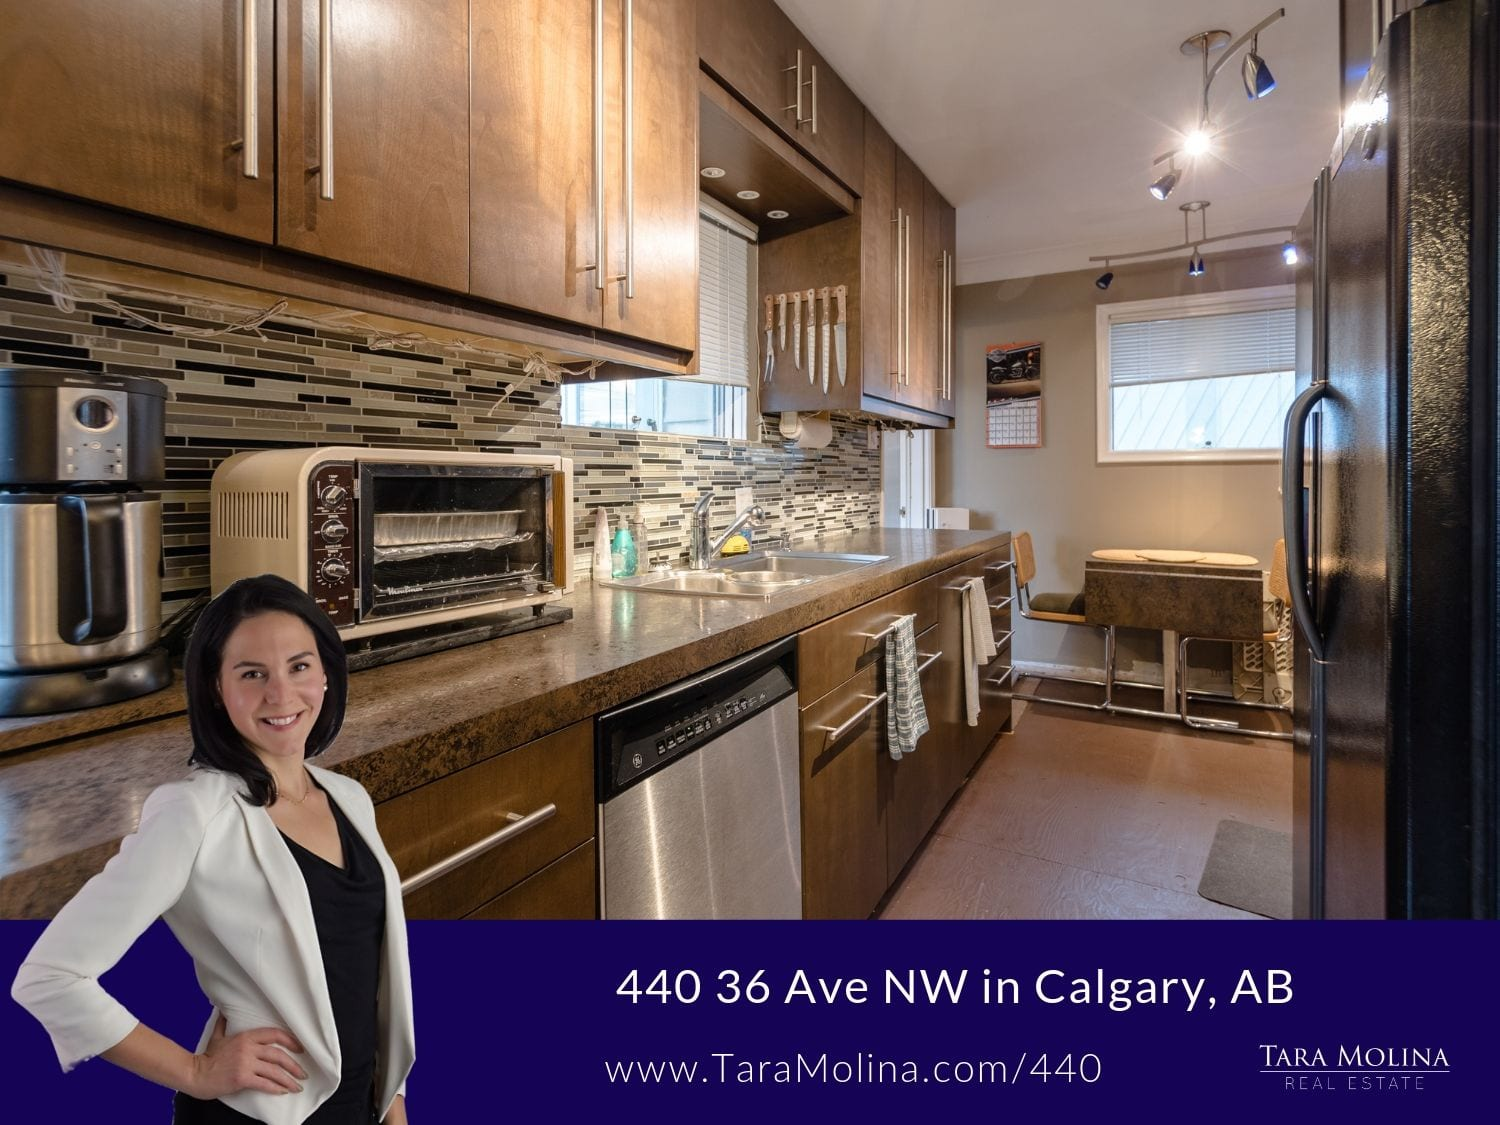 440 36 Ave NW in Calgary, AB